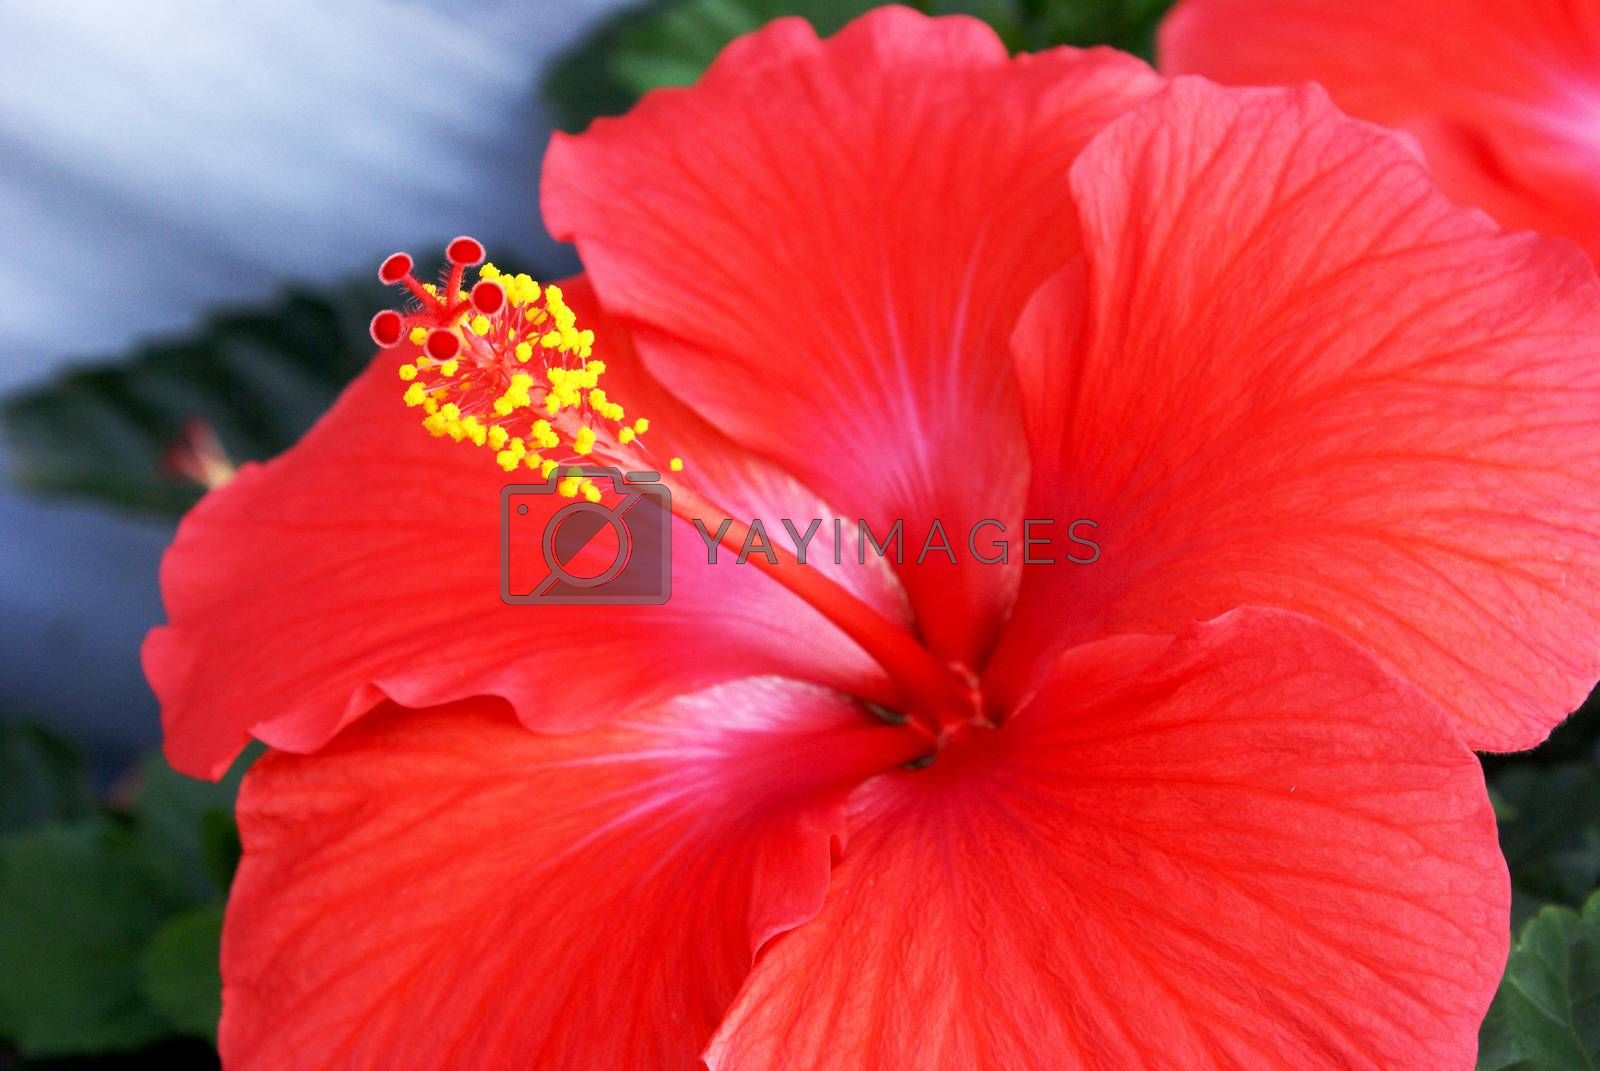 A closeup image of a beautiful full bloom hibiscus flower from the tropical regions.